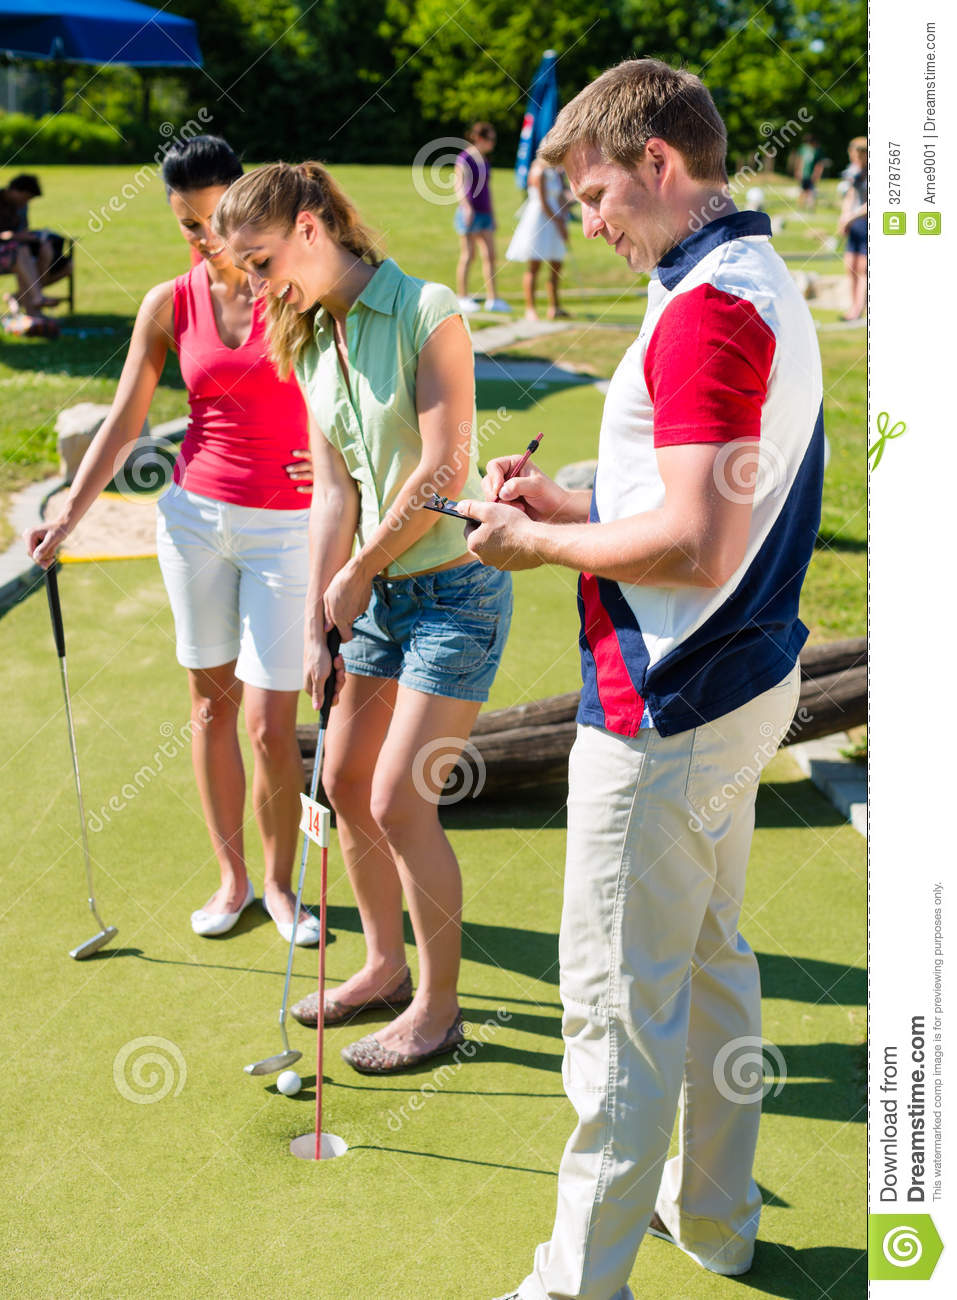 People playing miniature golf outdoors